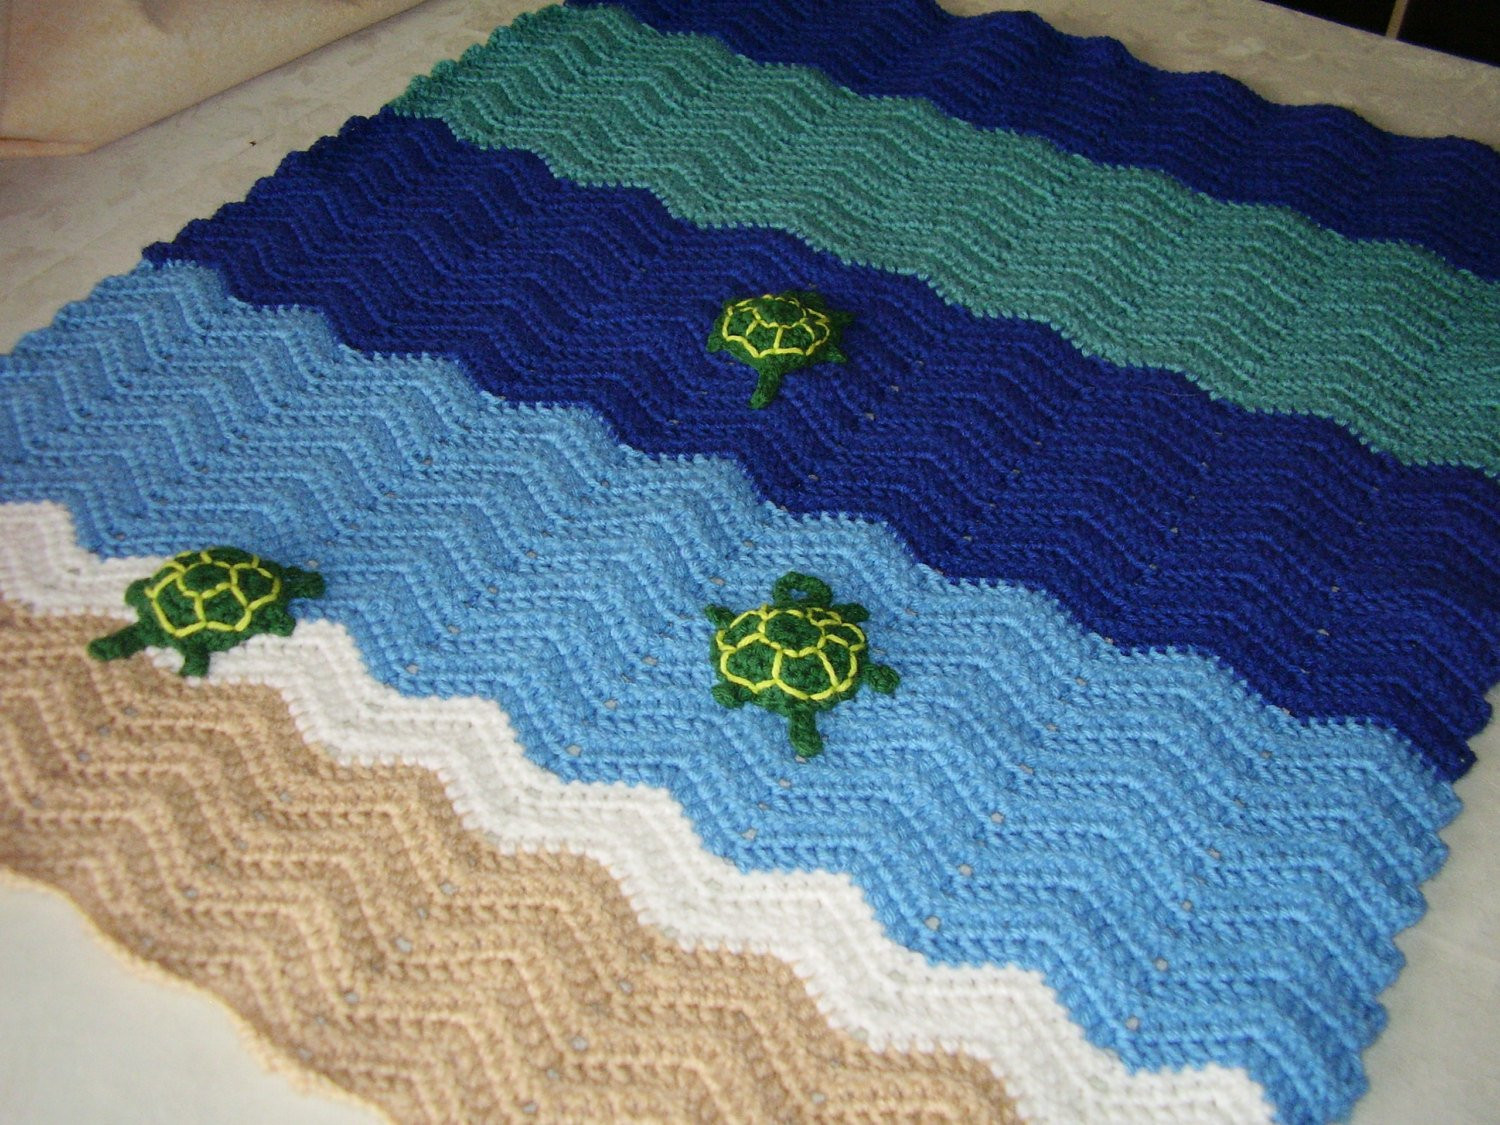 Crochet Turtle Blanket Pattern Best Of Crochet Ocean Waves Turtle Blanket In Sand Blues by Of Brilliant 42 Pics Crochet Turtle Blanket Pattern